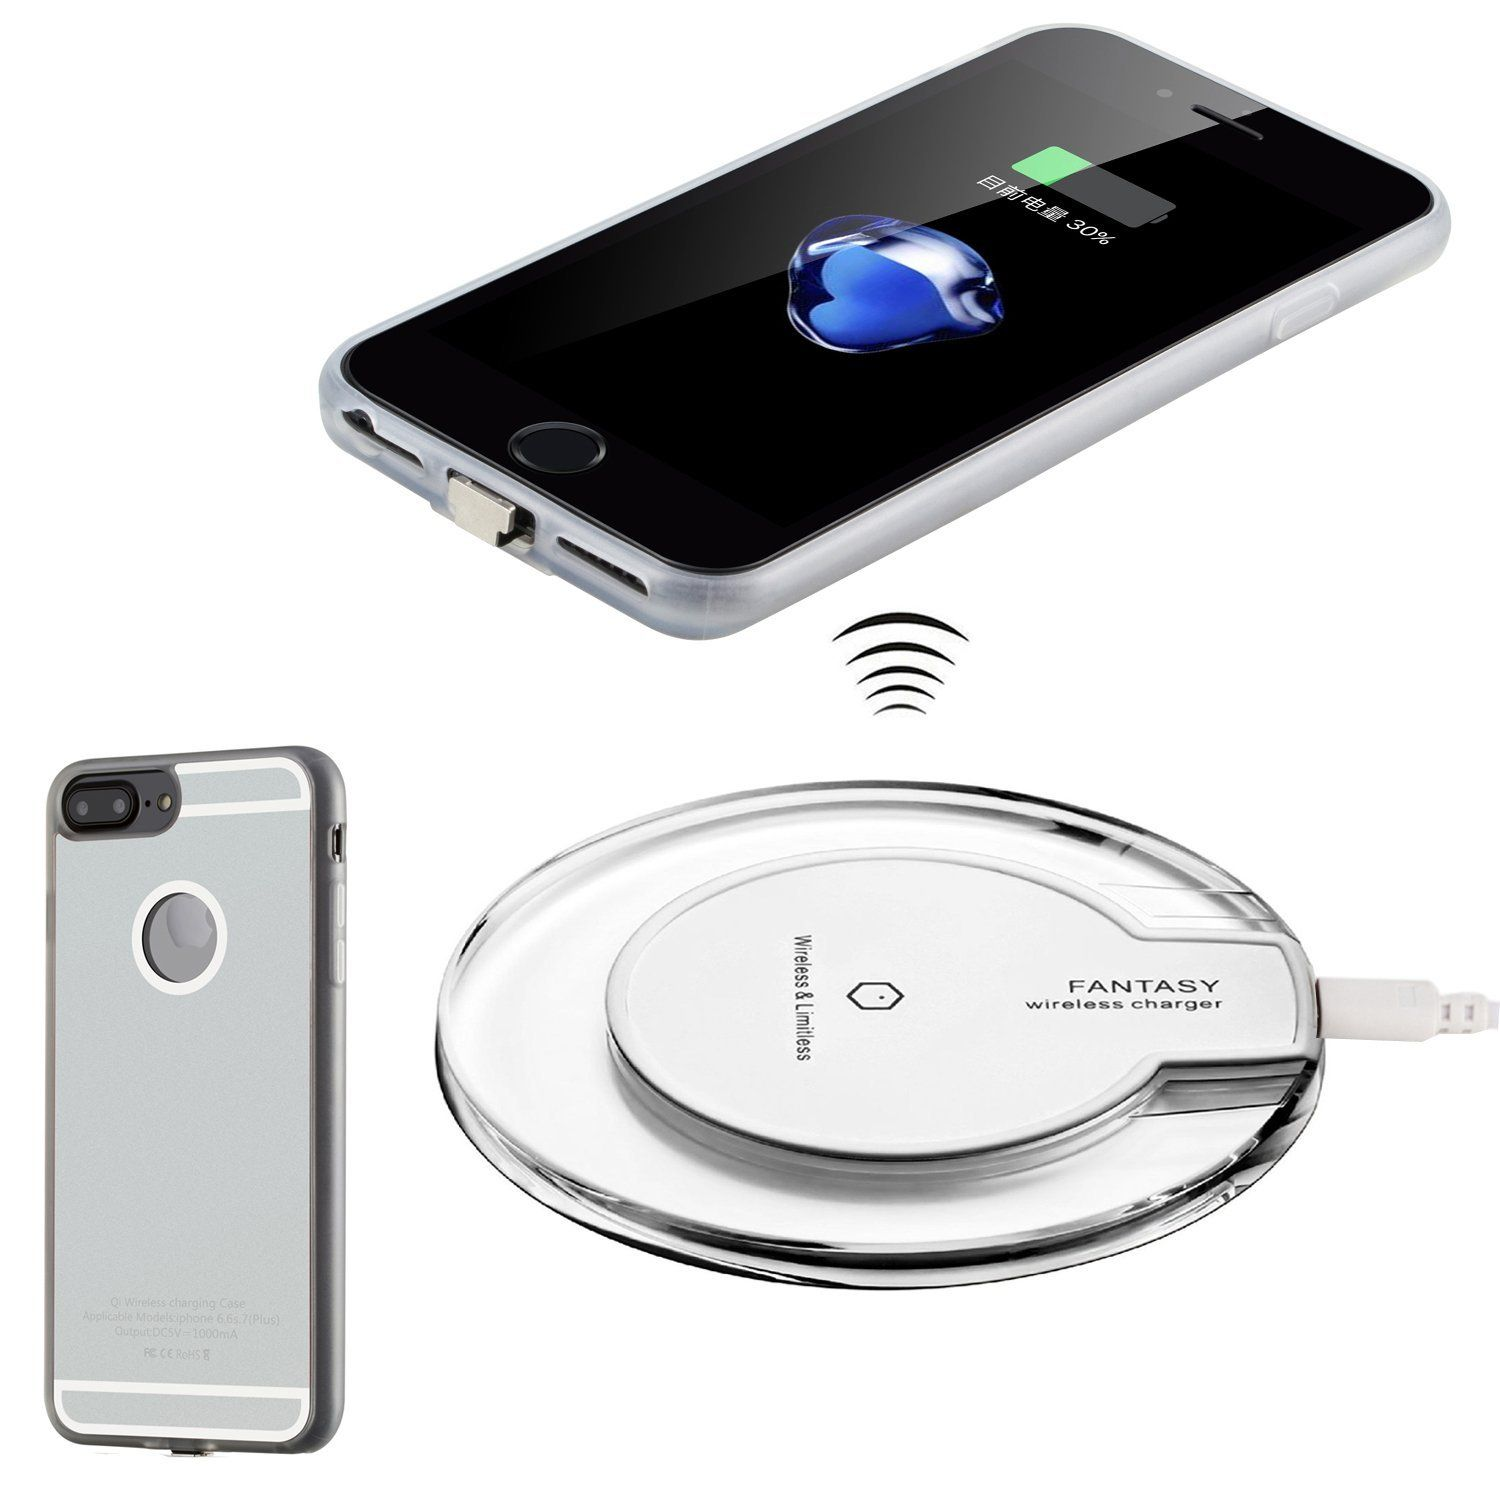 promo code 2f3c3 0c2e5 Antye Qi Wireless Charger Kit for iPhone 7, Including Wireless ...